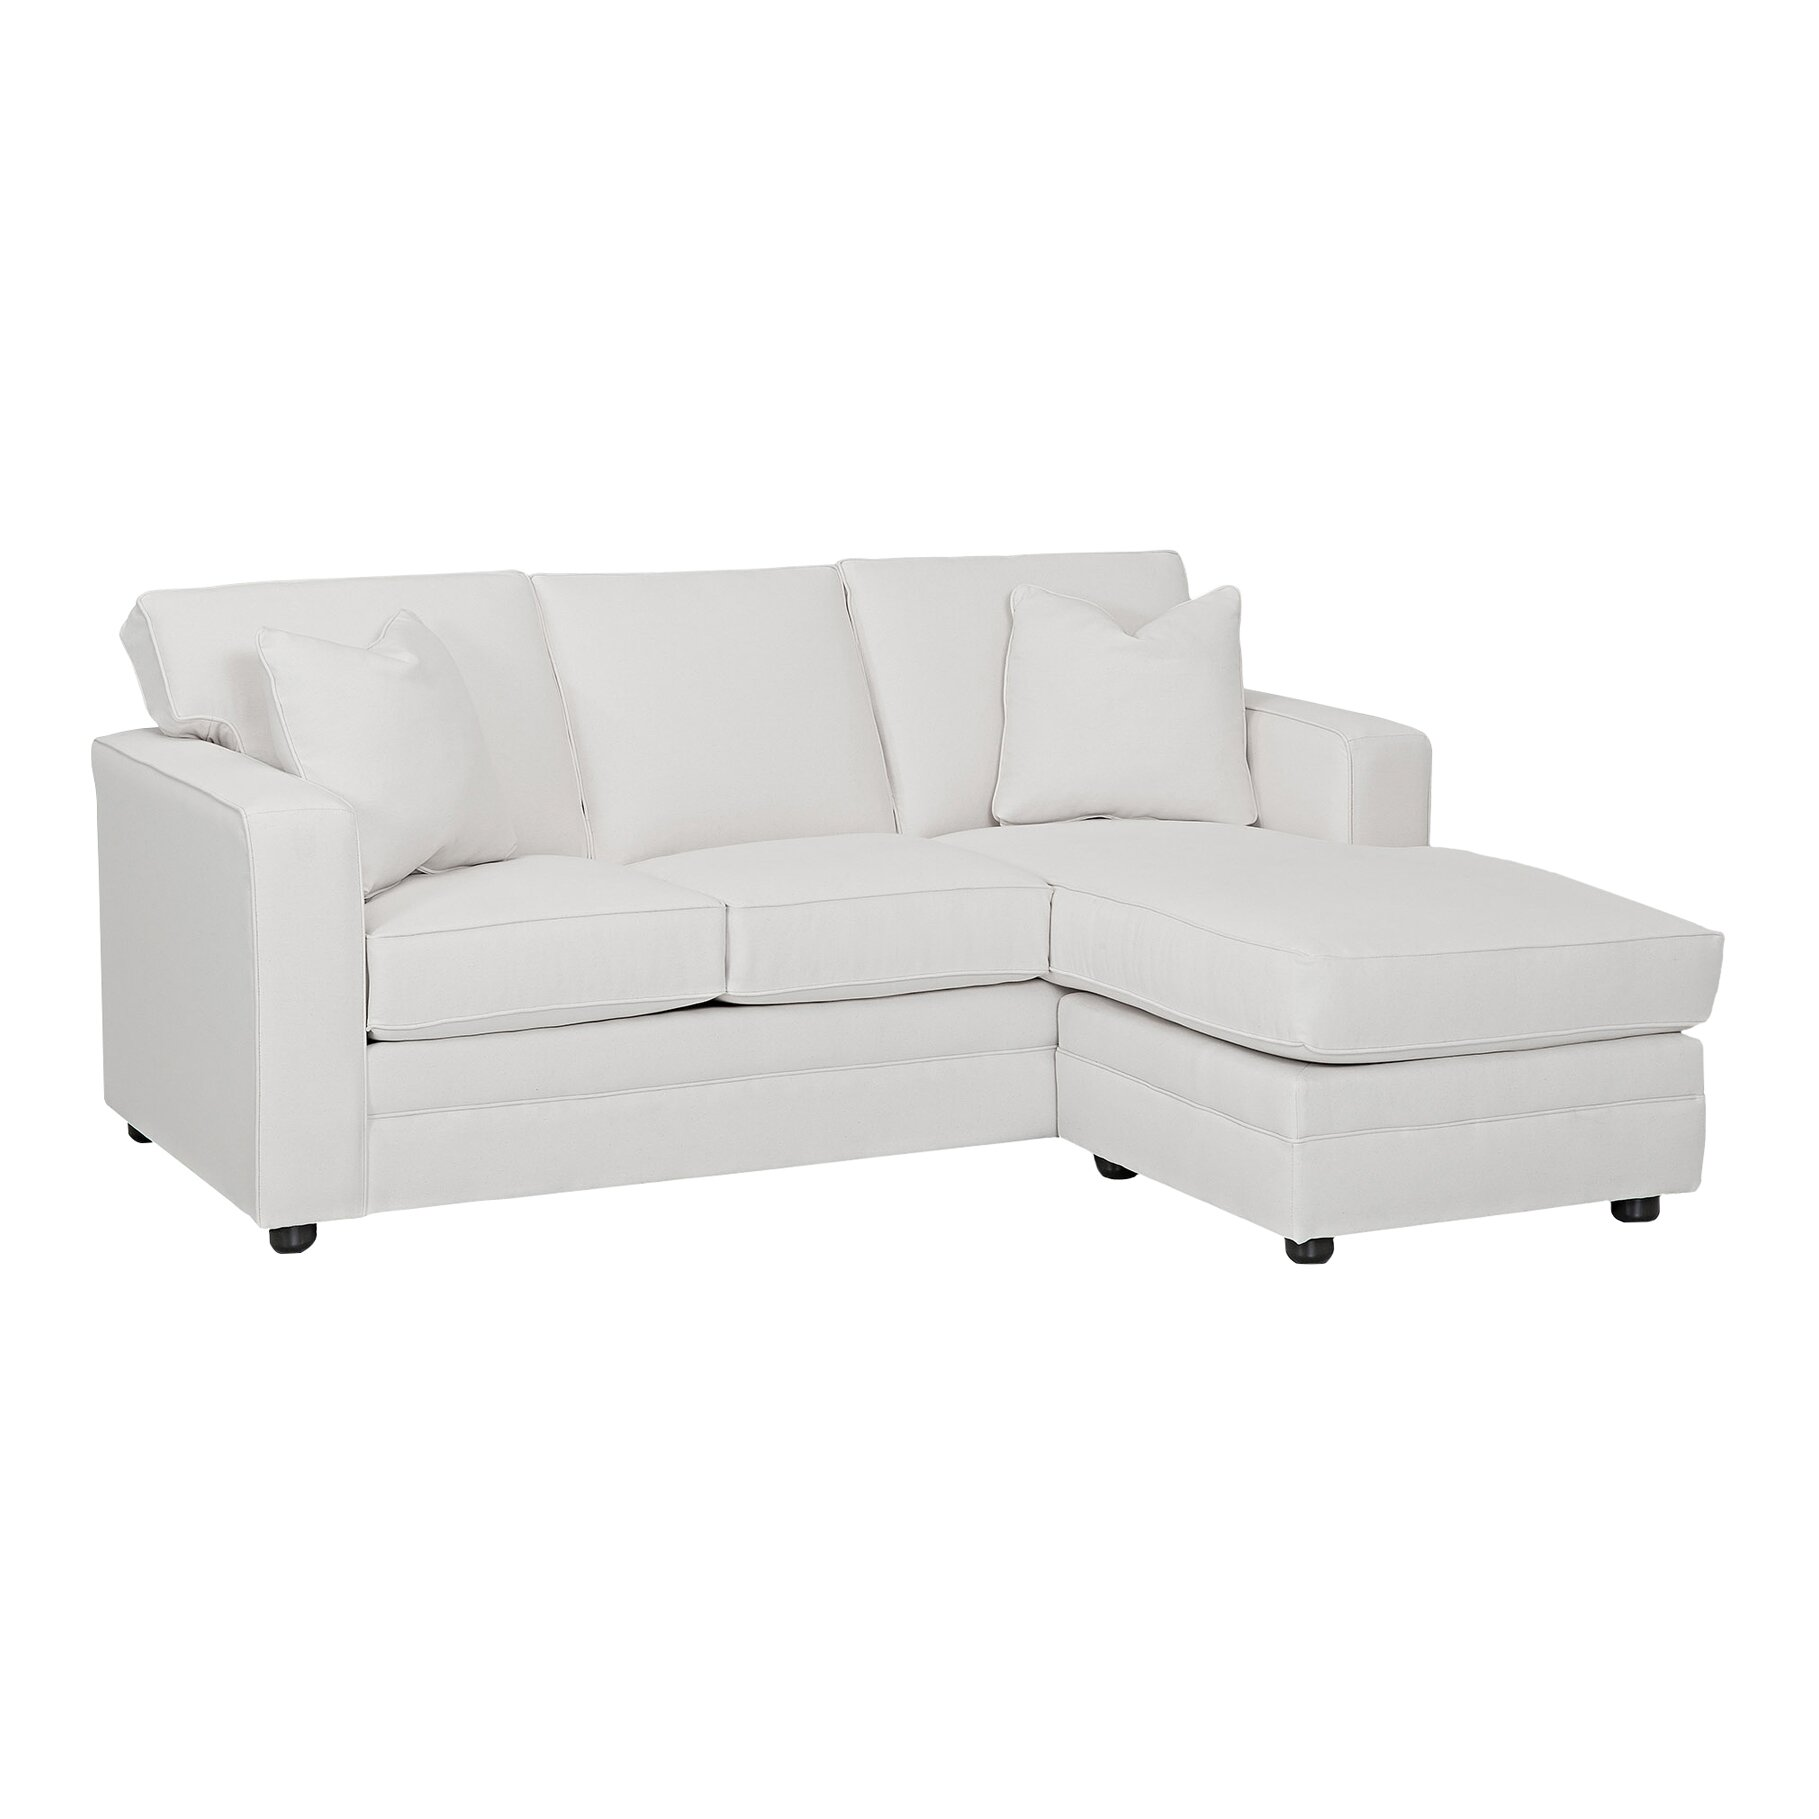 Wayfair Custom Upholstery Andrew Reversible Chaise